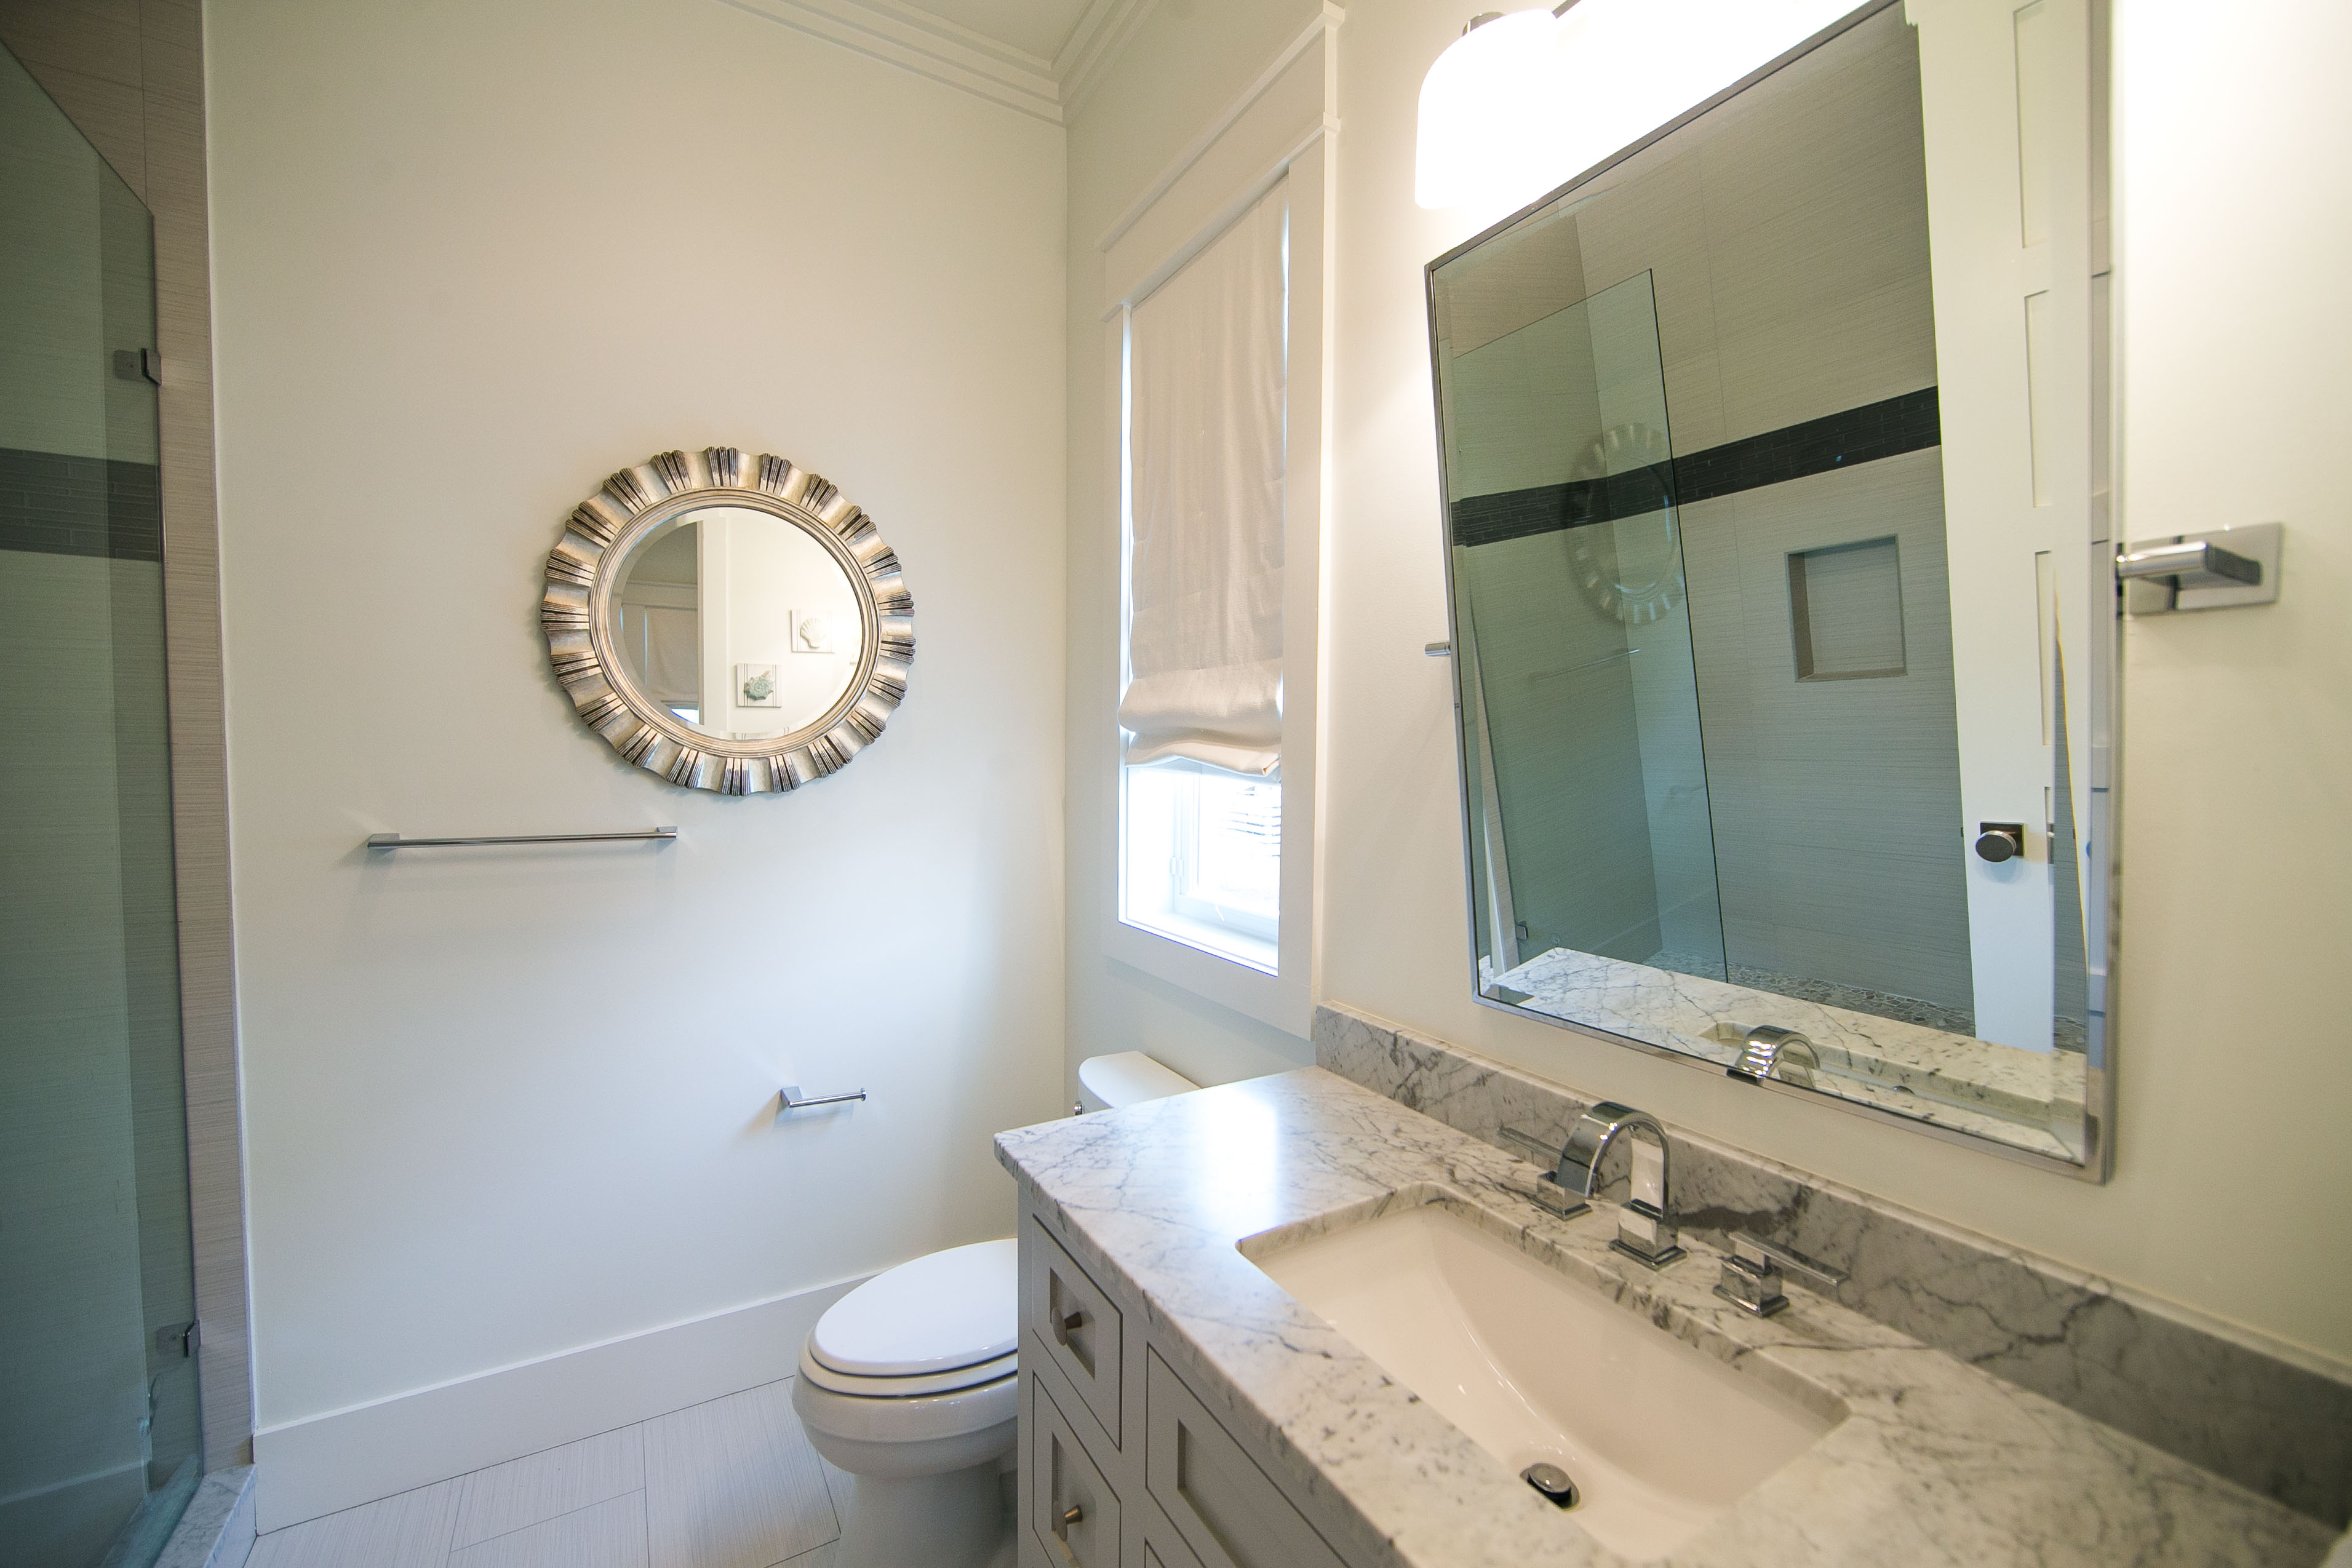 King guest bedroom ensuite bath with a marble vanity and a shower.